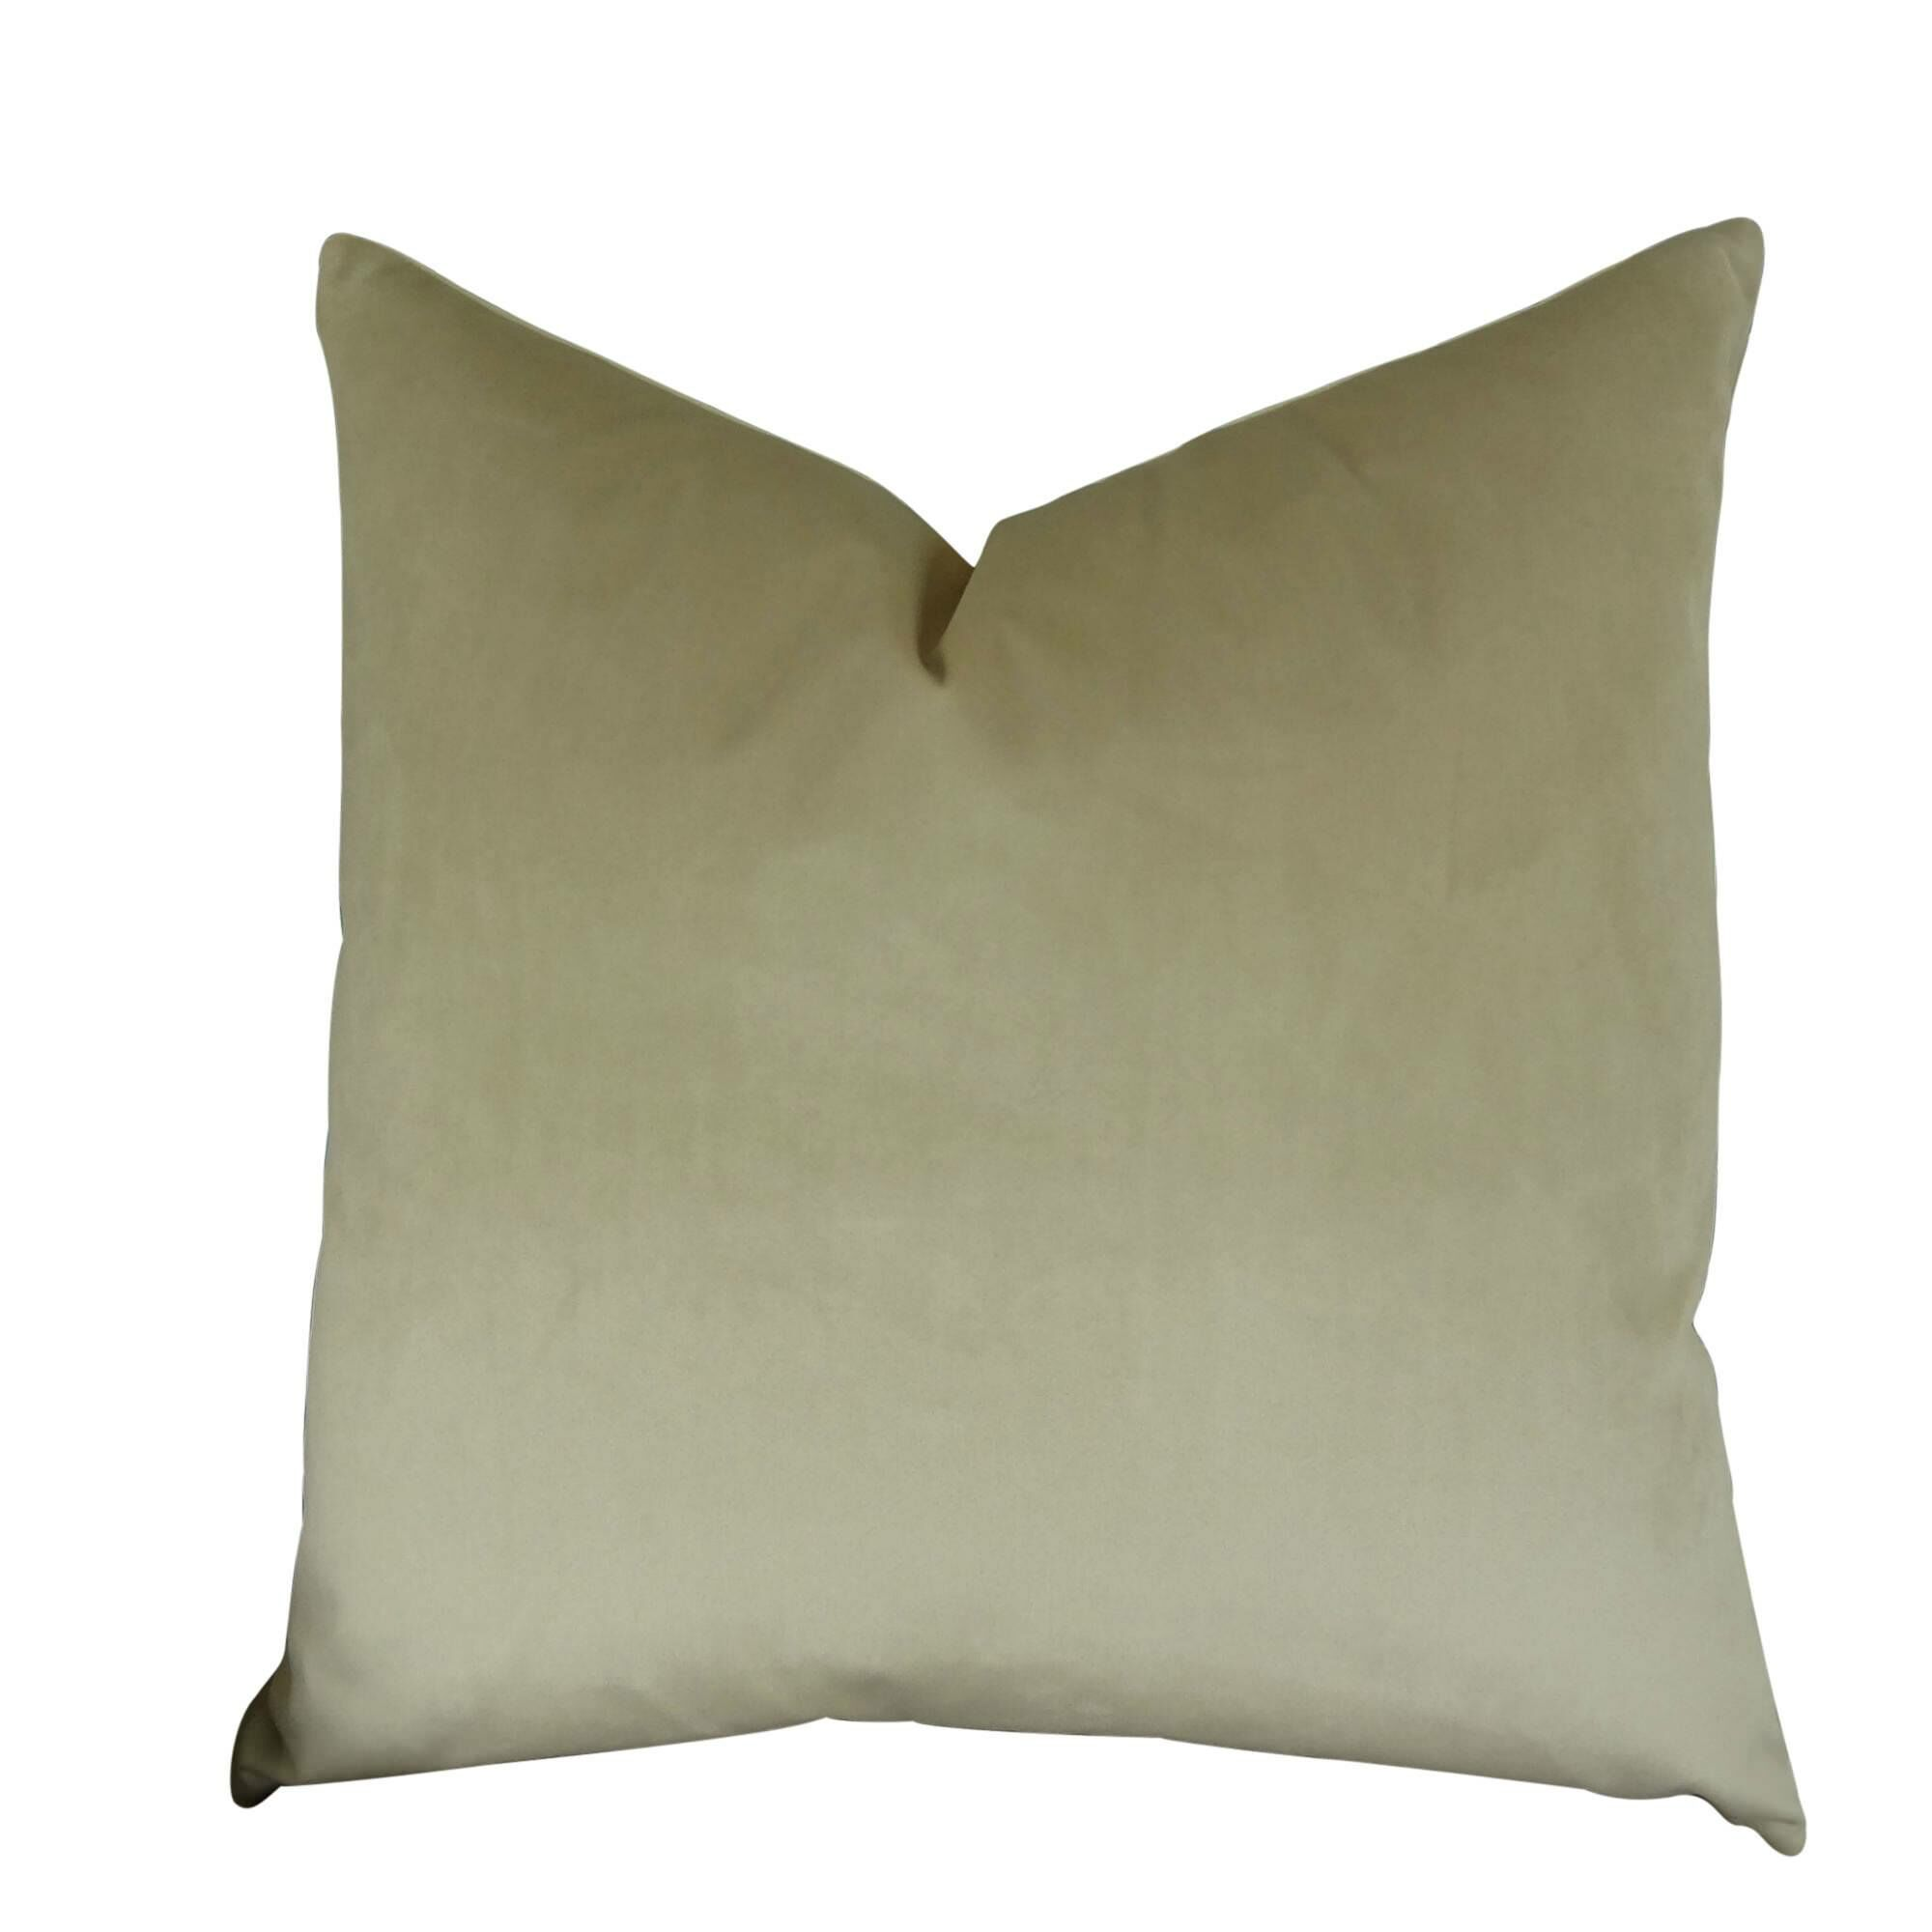 Kimsey Solid Luxury Pillow Fill Material: H-allrgnc Polyfill, Size: 18